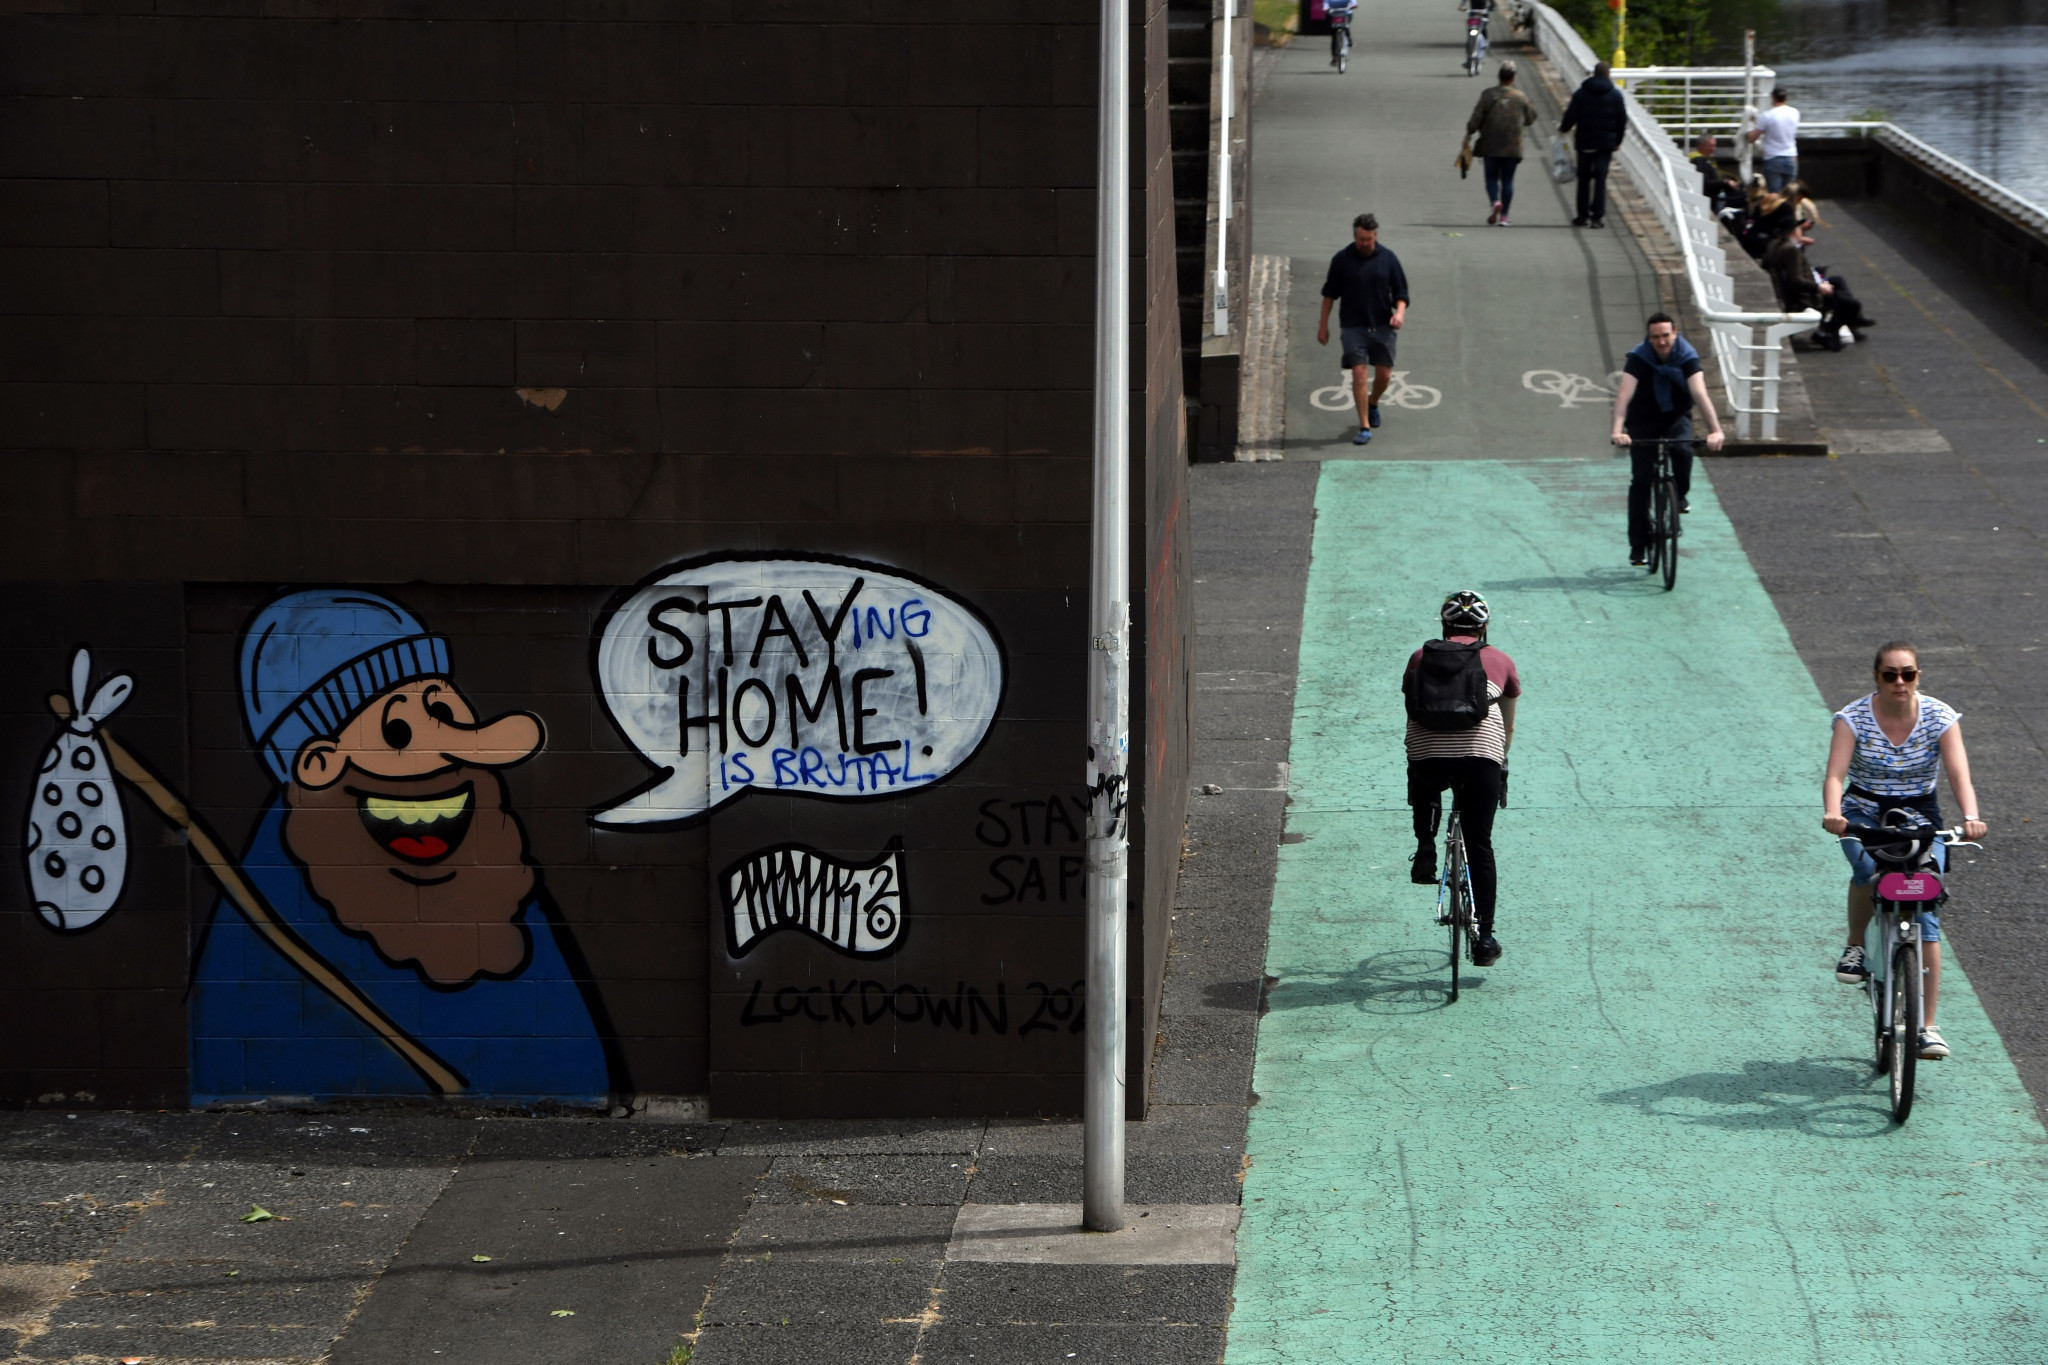 Many of Glasgow's cycle paths are due to be improved before 2023 ©Getty Images